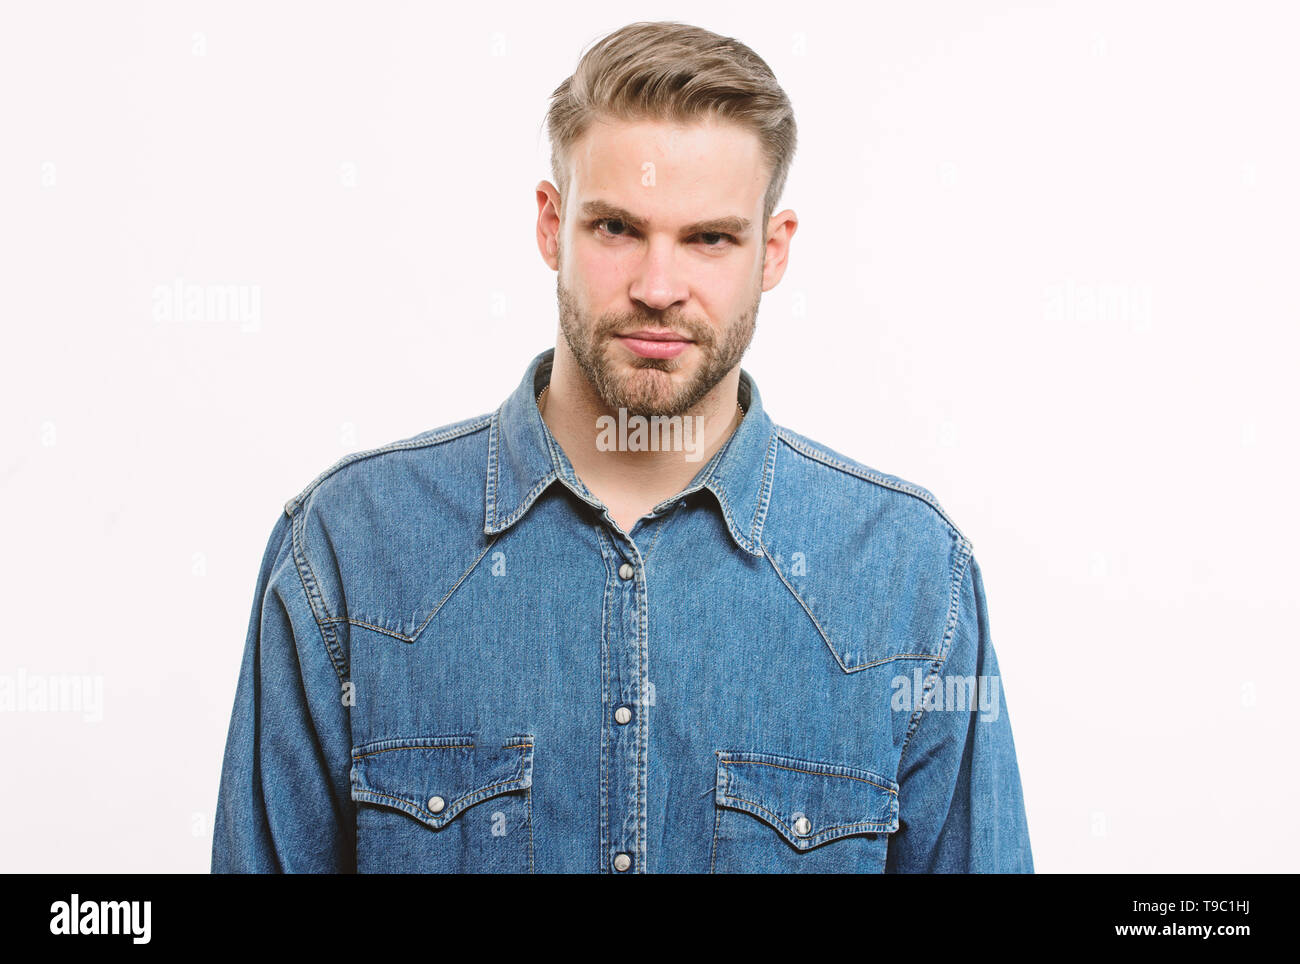 Hipster in denim shirt looks attractive white background. Man well groomed beard and confident face. Well groomed macho. Barber and beard care. Beard grooming salon. Barber salon. Beard grooming. - Stock Image